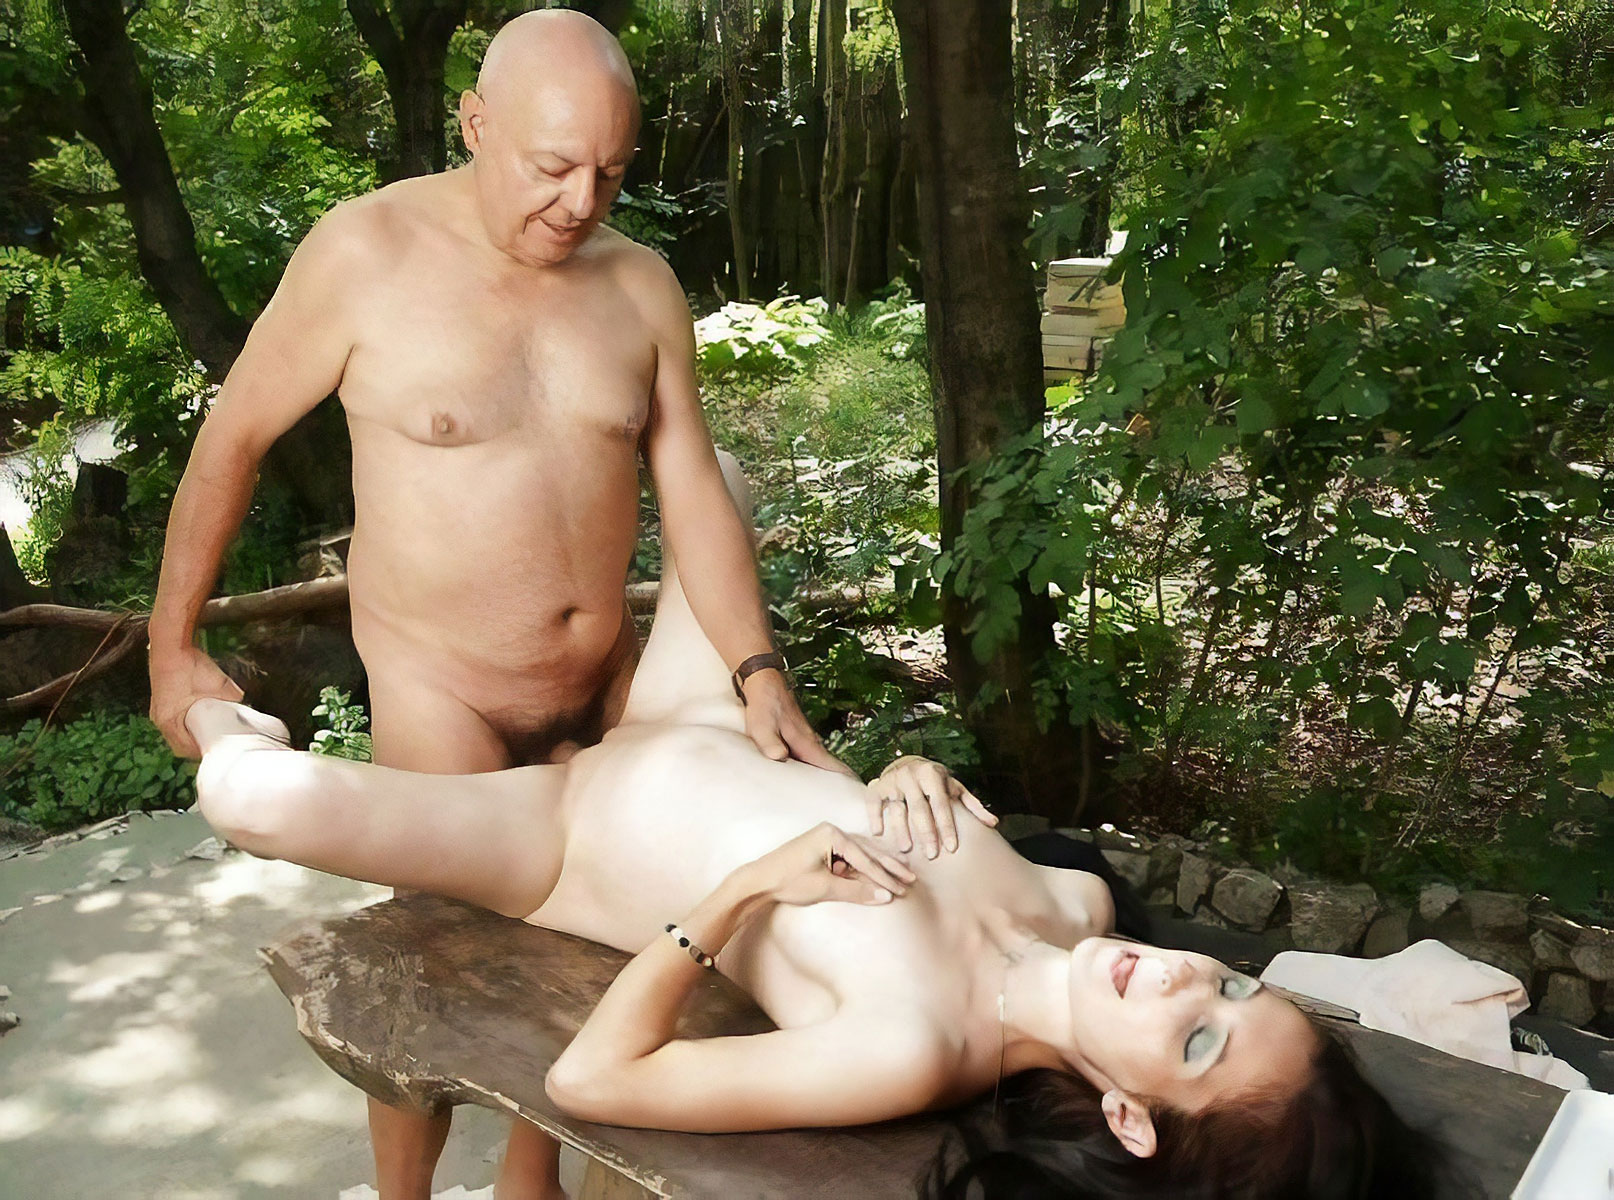 Naked Teen Girl Gives A Really Old Man A Ball Licking Blowjob